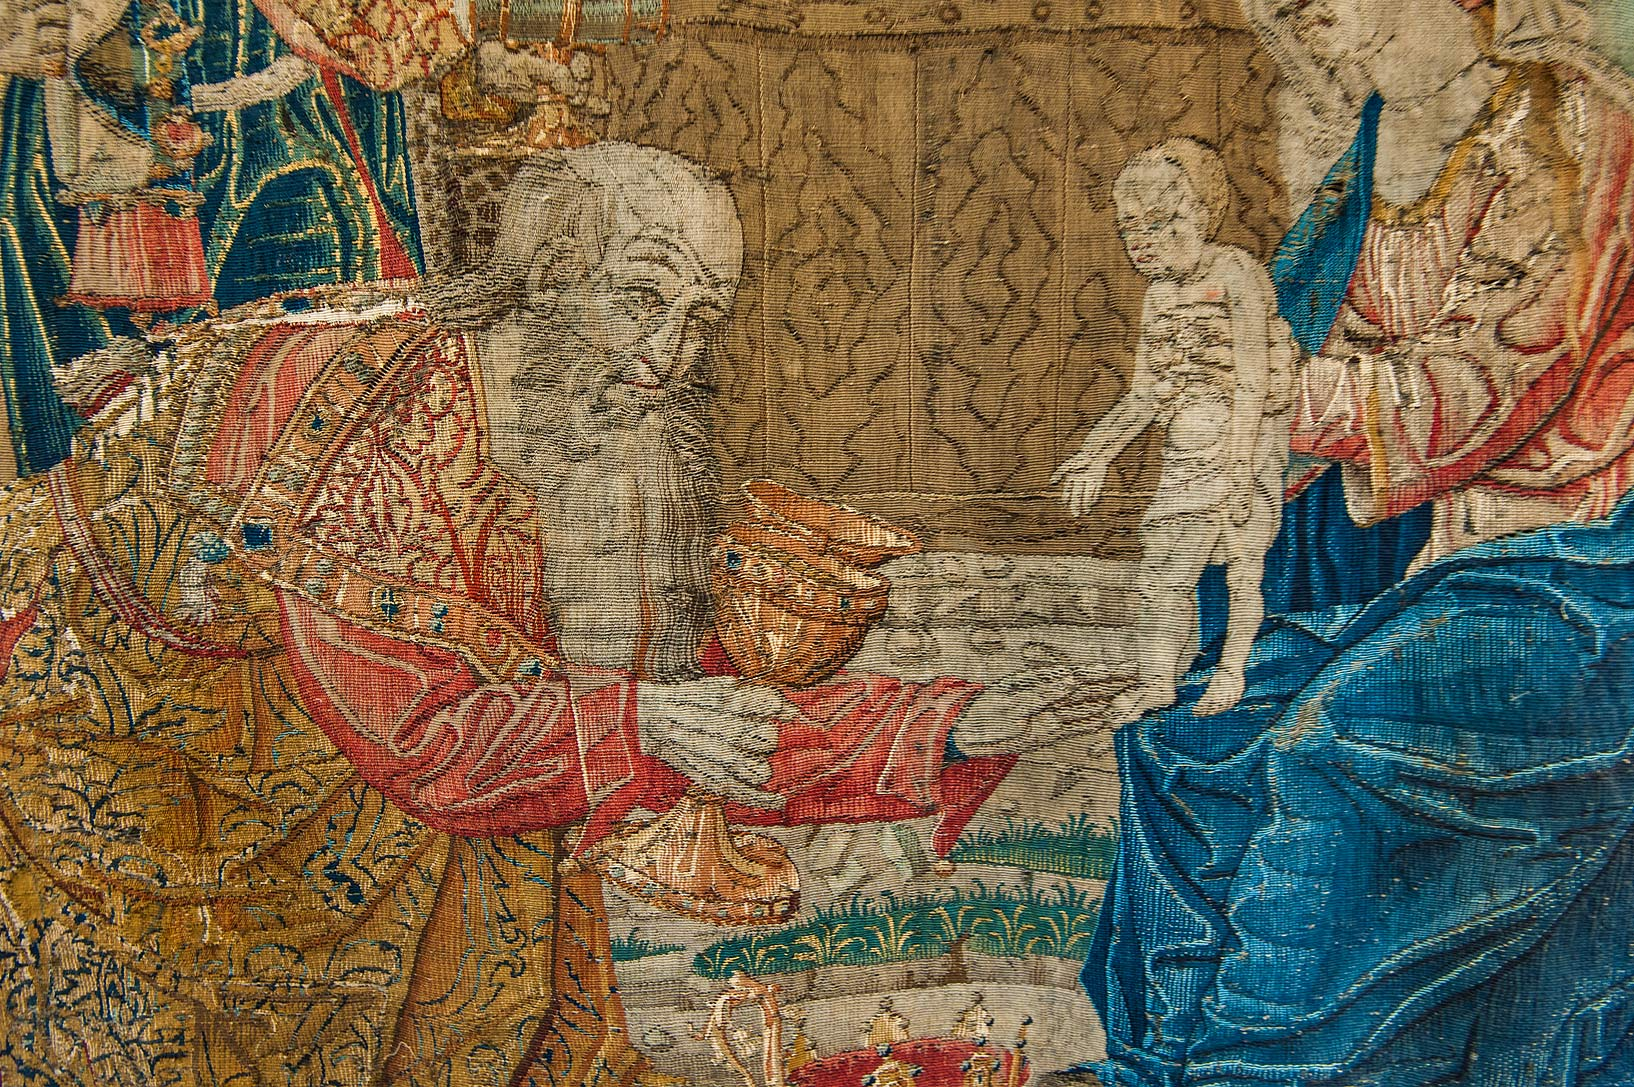 Bible scene on a tapestry in Hermitage Museum. St.Petersburg, Russia